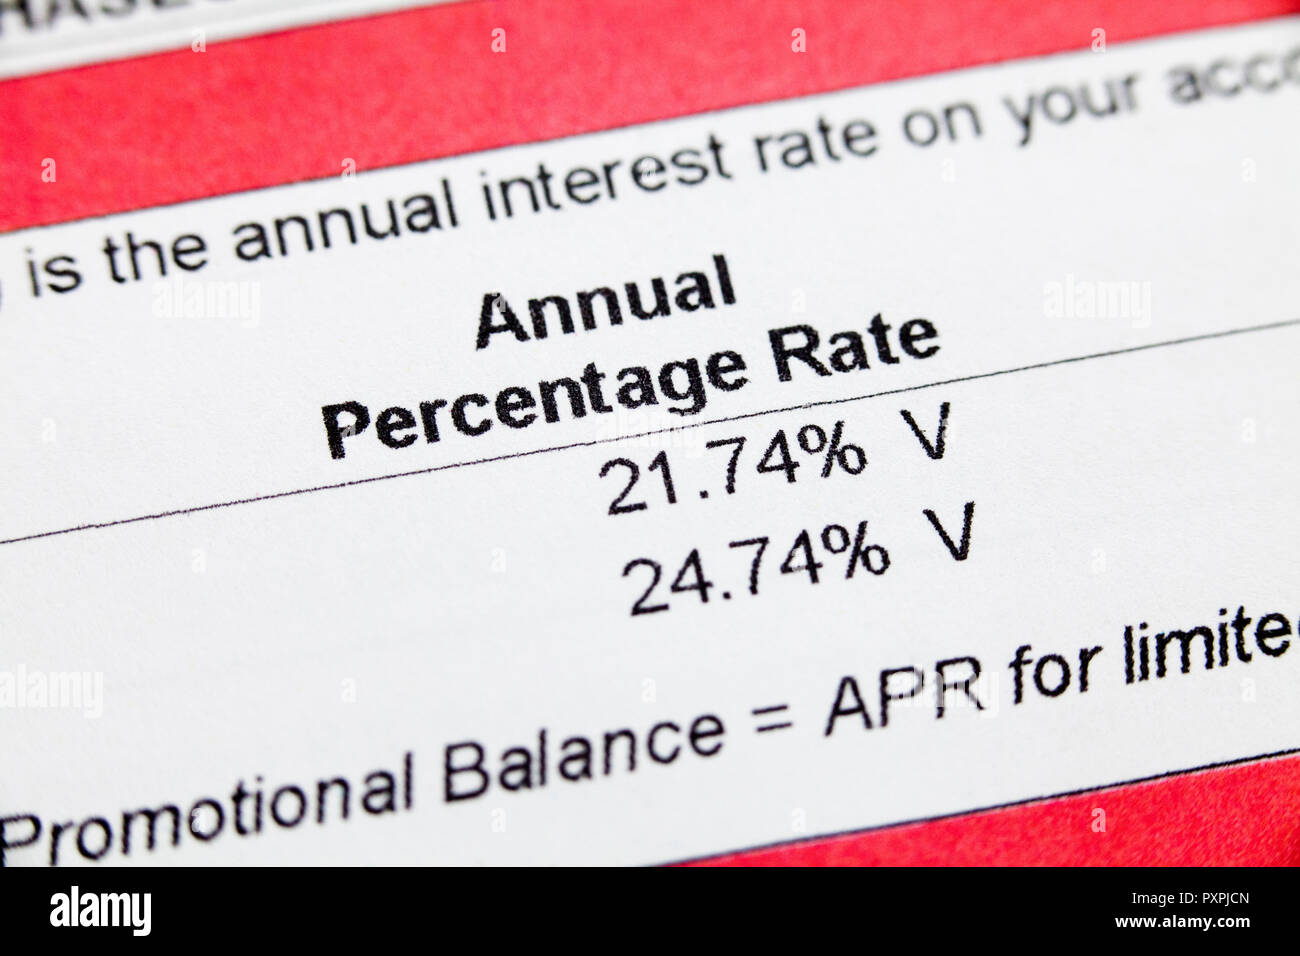 Credit card Interest rate (APR, credit card Annual Percentage Rate) information on monthly statement - USA - Stock Image